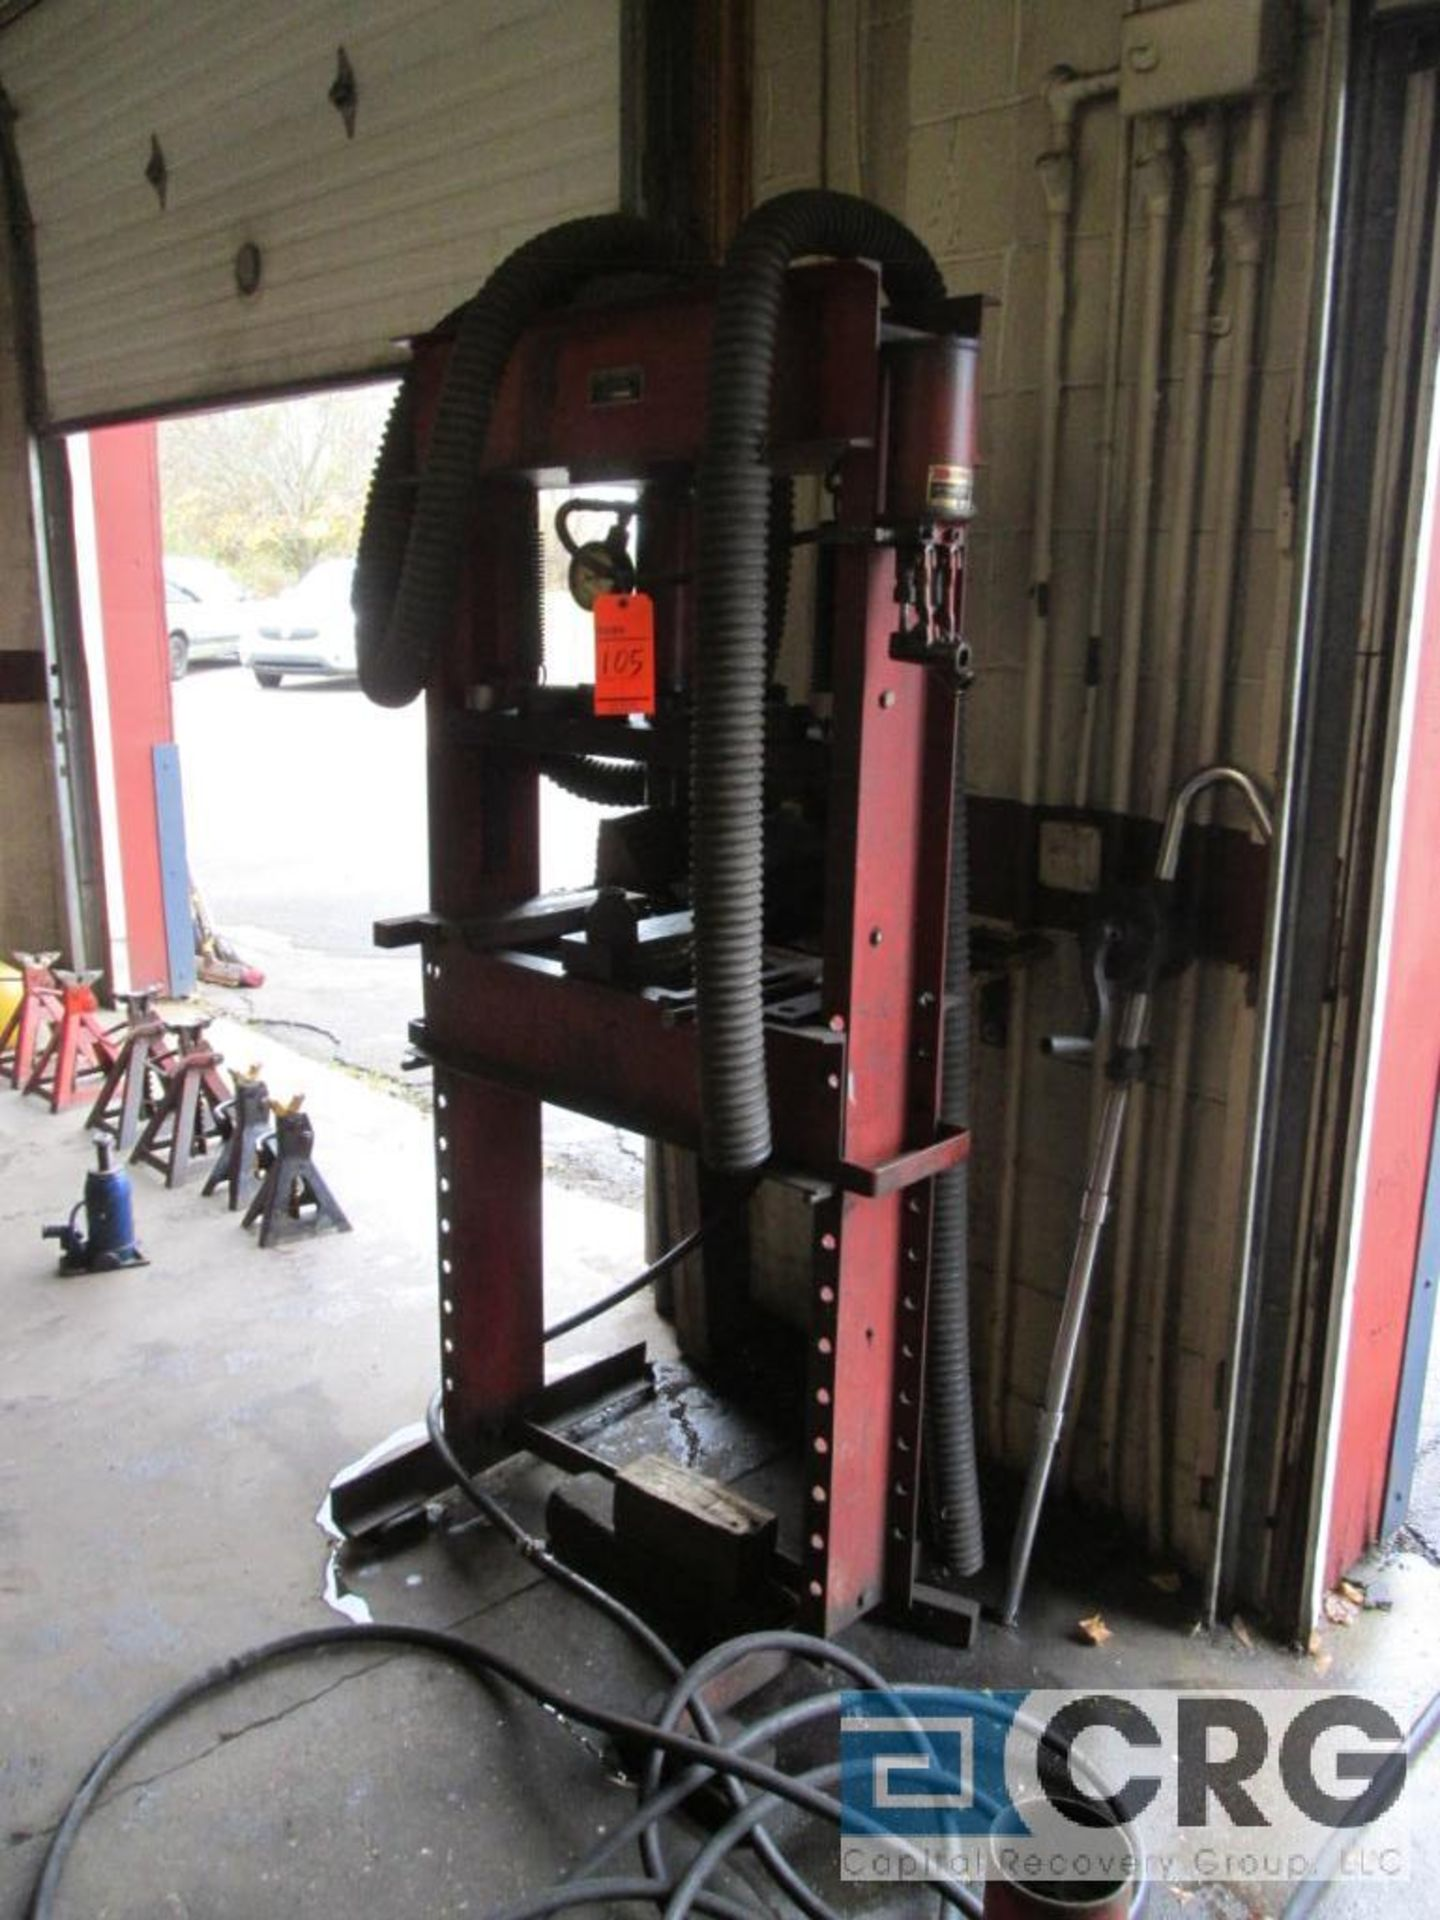 Red Arrow Tow Bar Mfg. Co. hydraulic press, H-frame type, 20 ton cap., m/n, s/n not available - Image 2 of 3